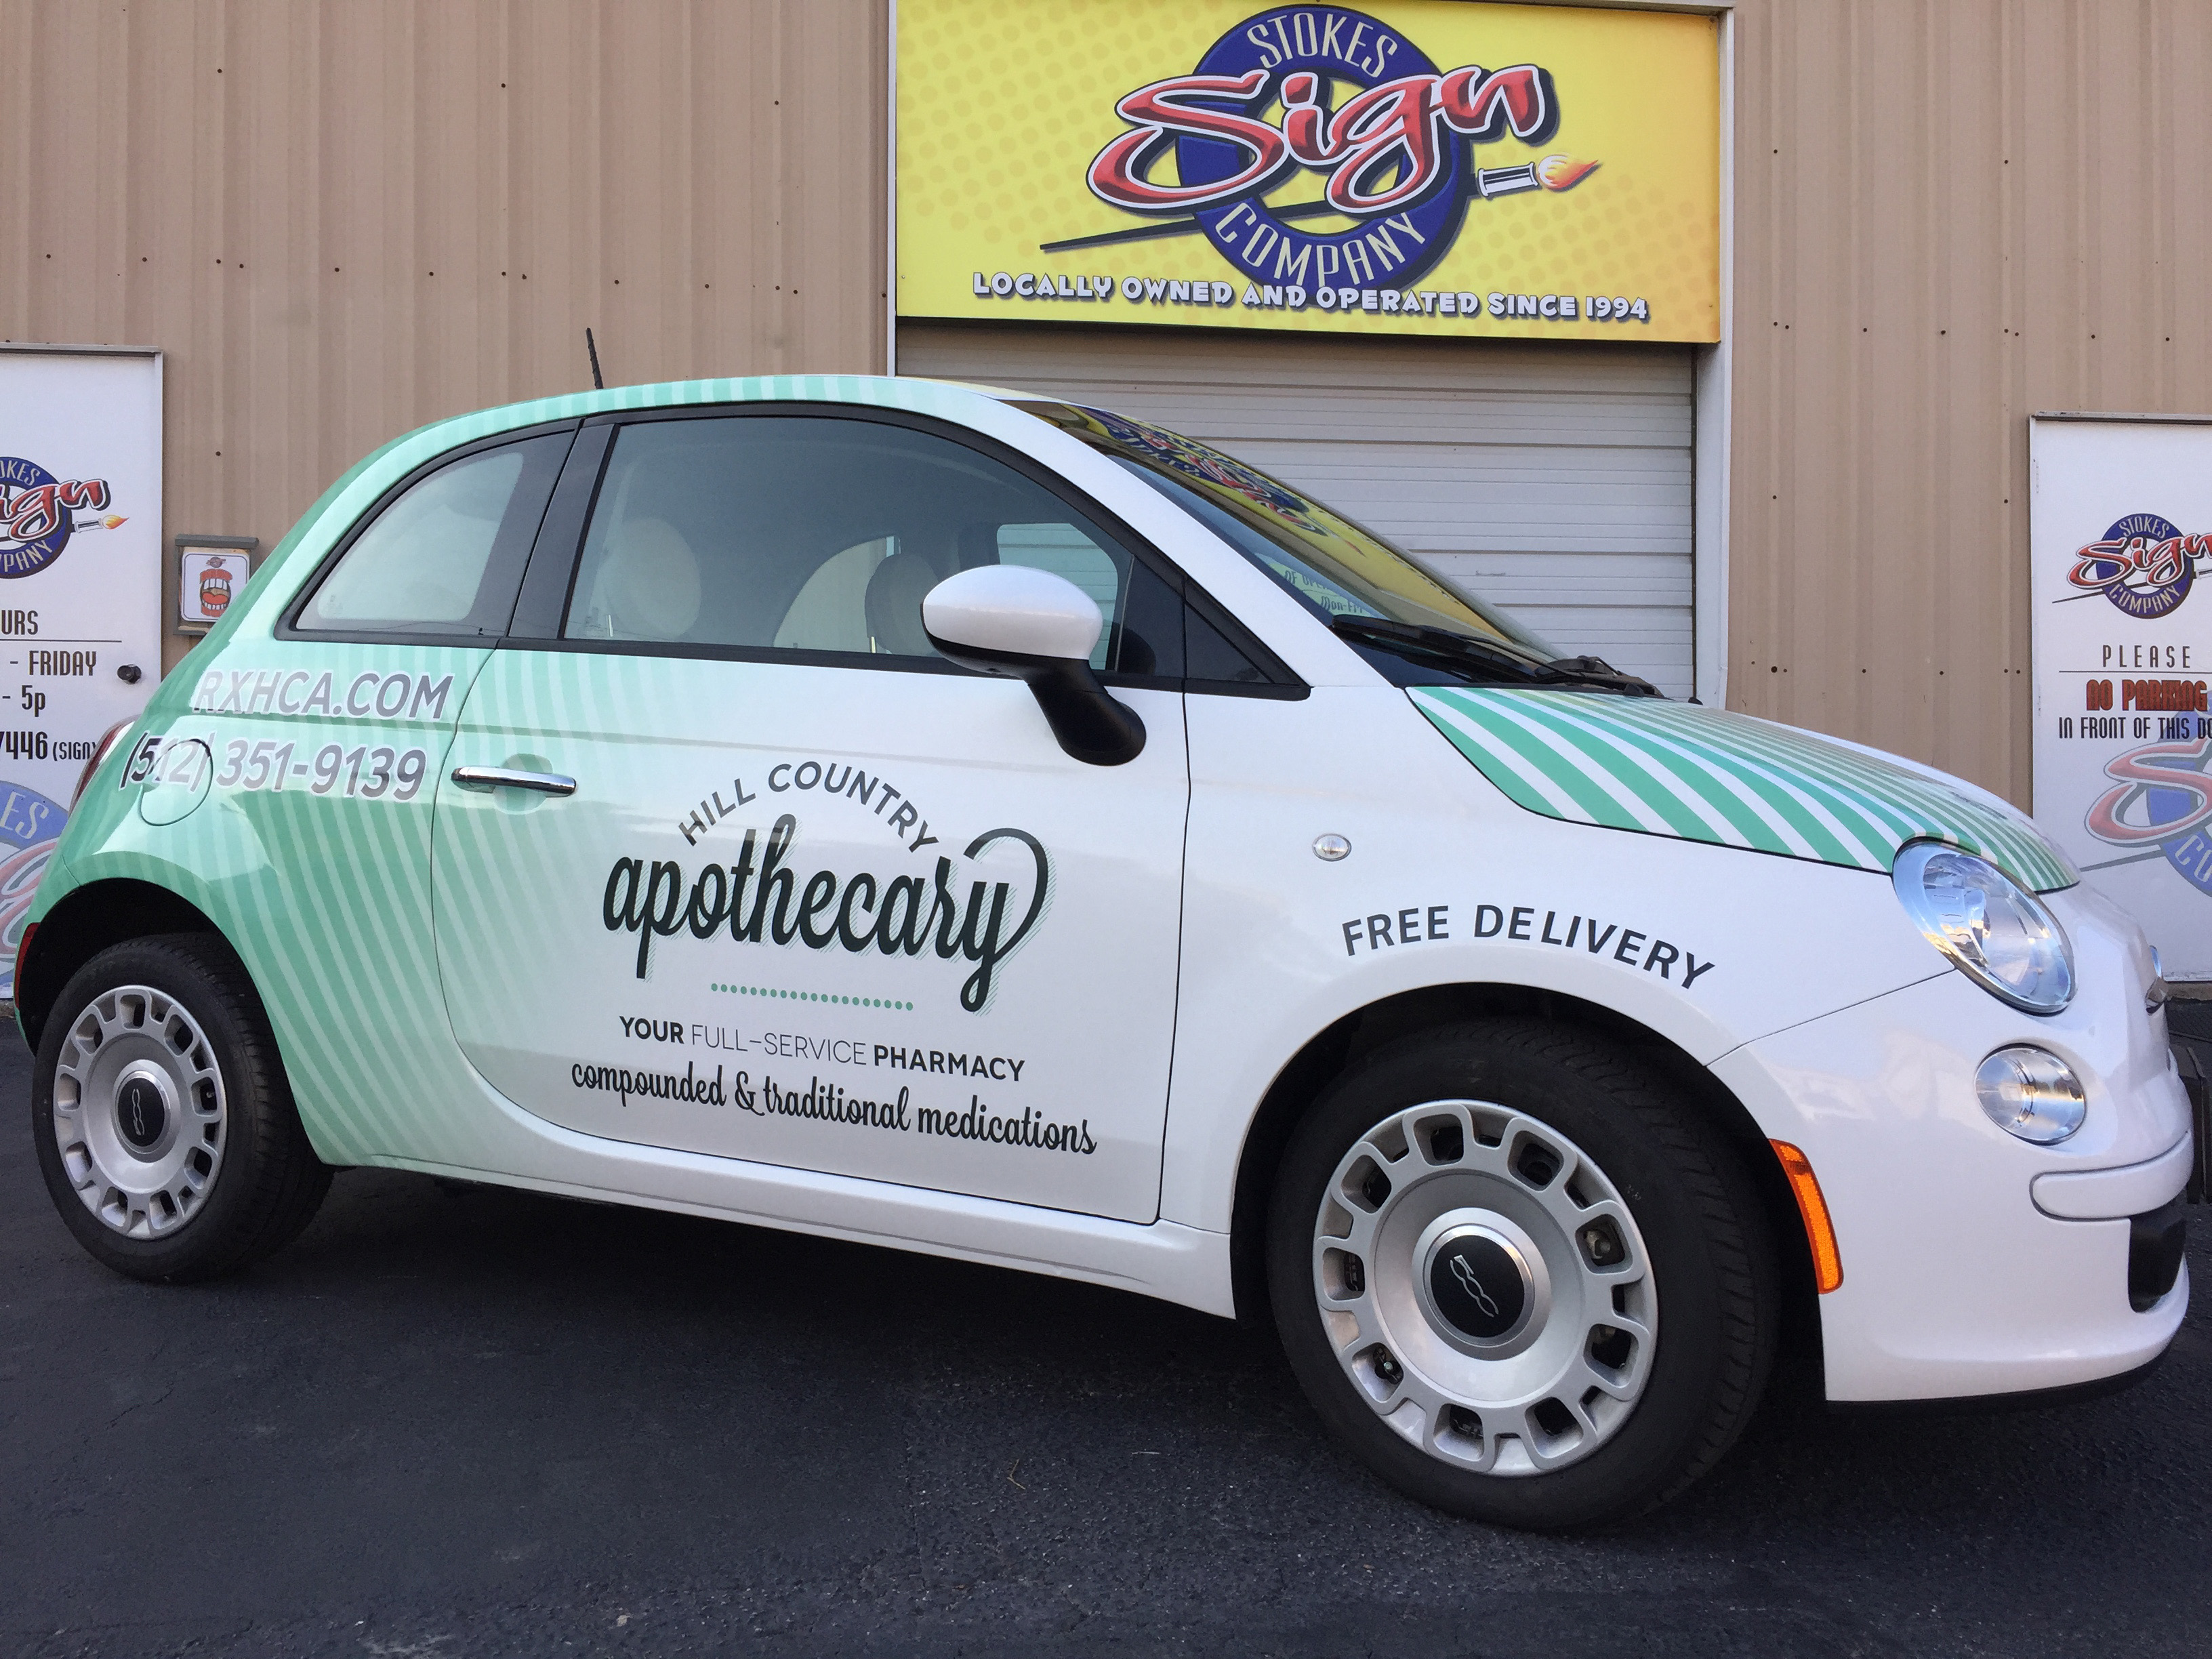 Hill Country Apothecary Fiat Wrap